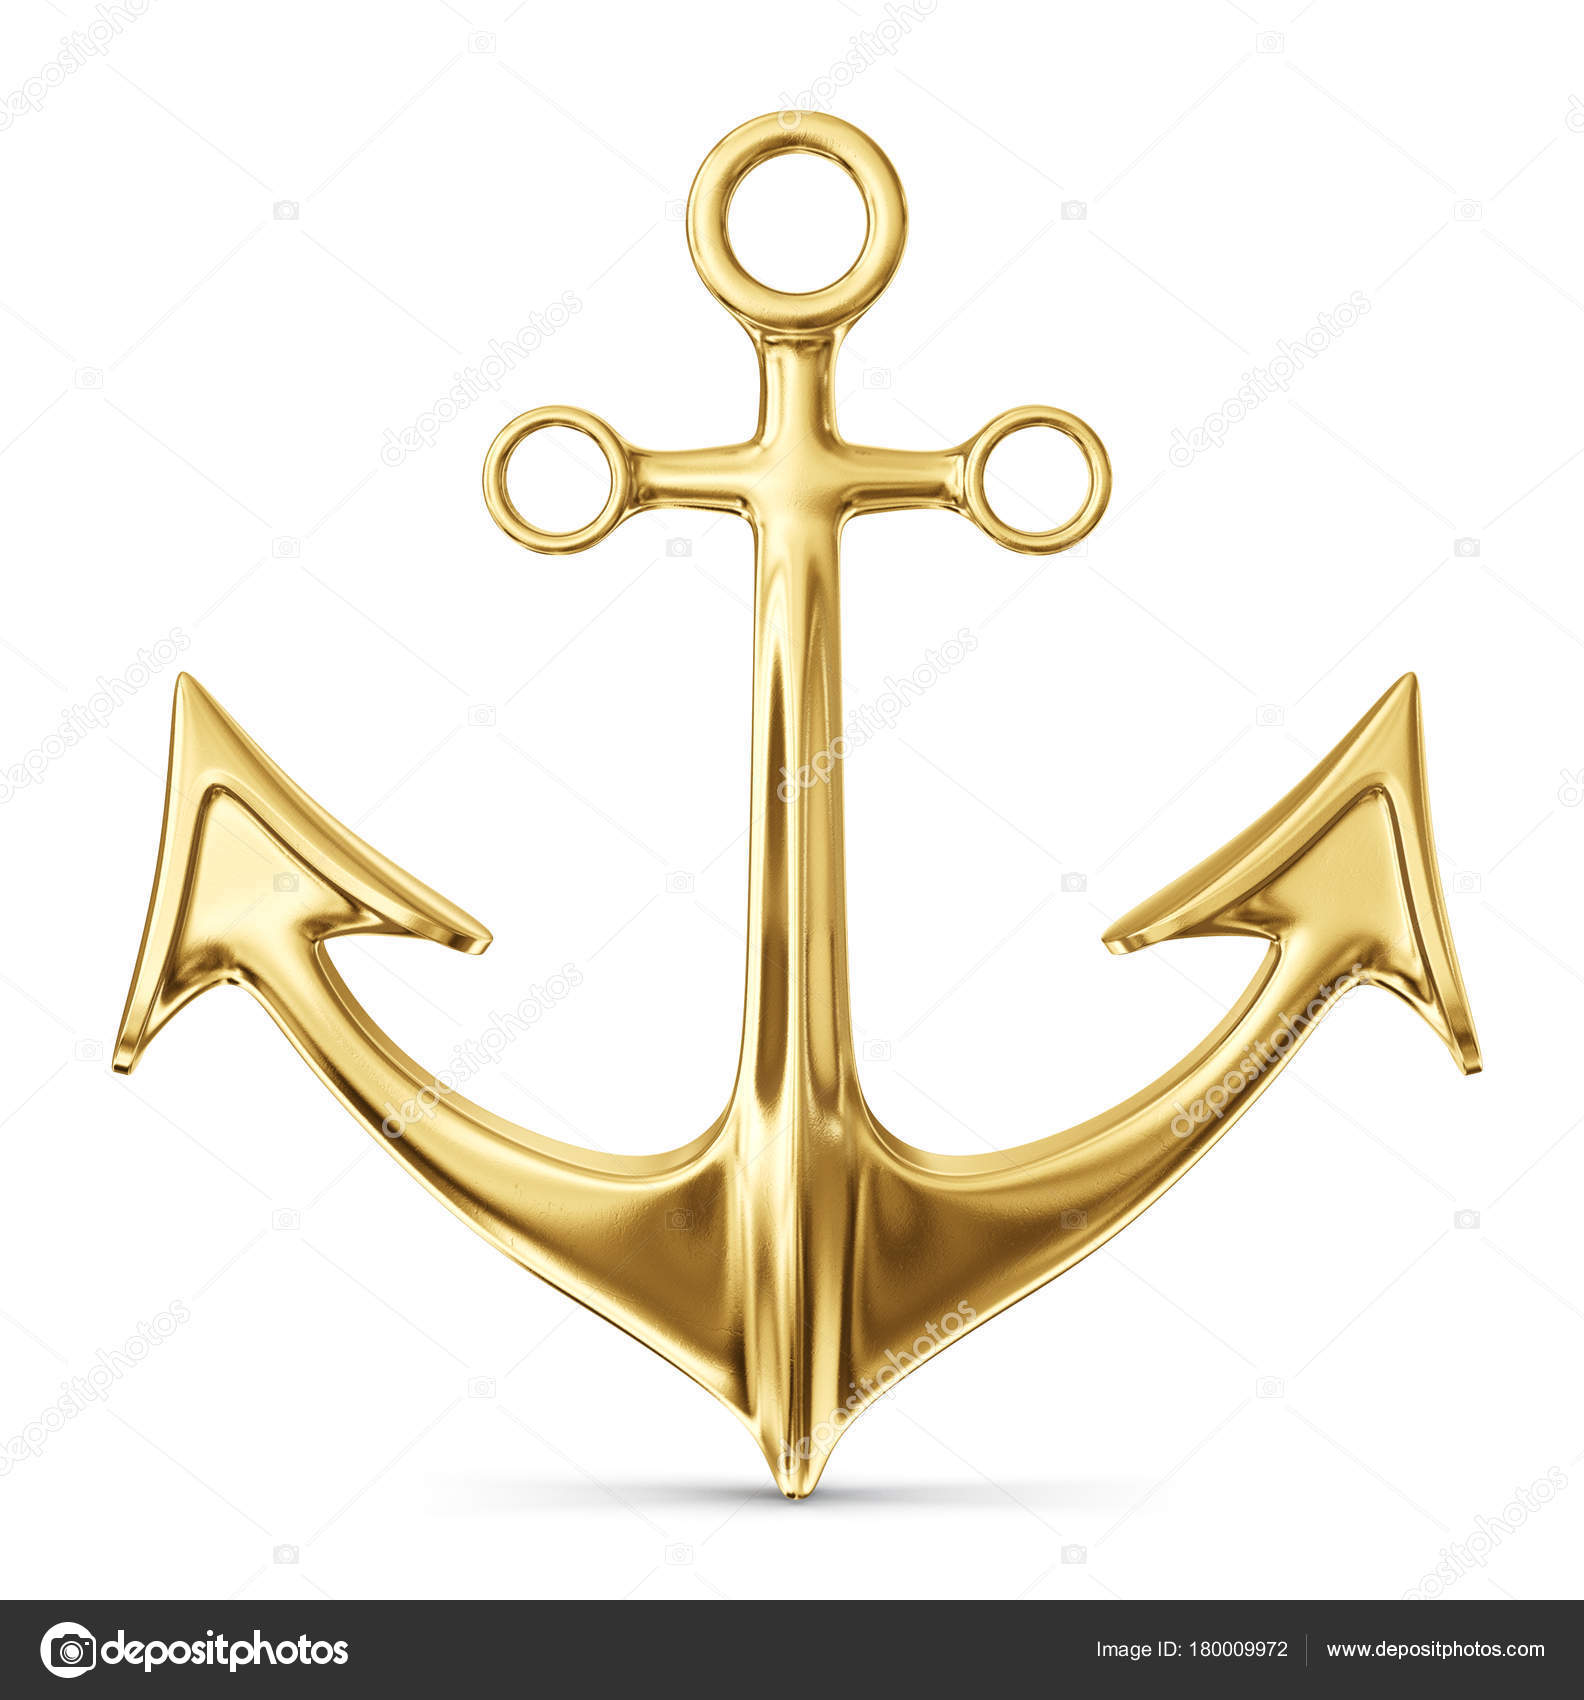 Gold Anchor Isolated White Background Illustration Stock Photo